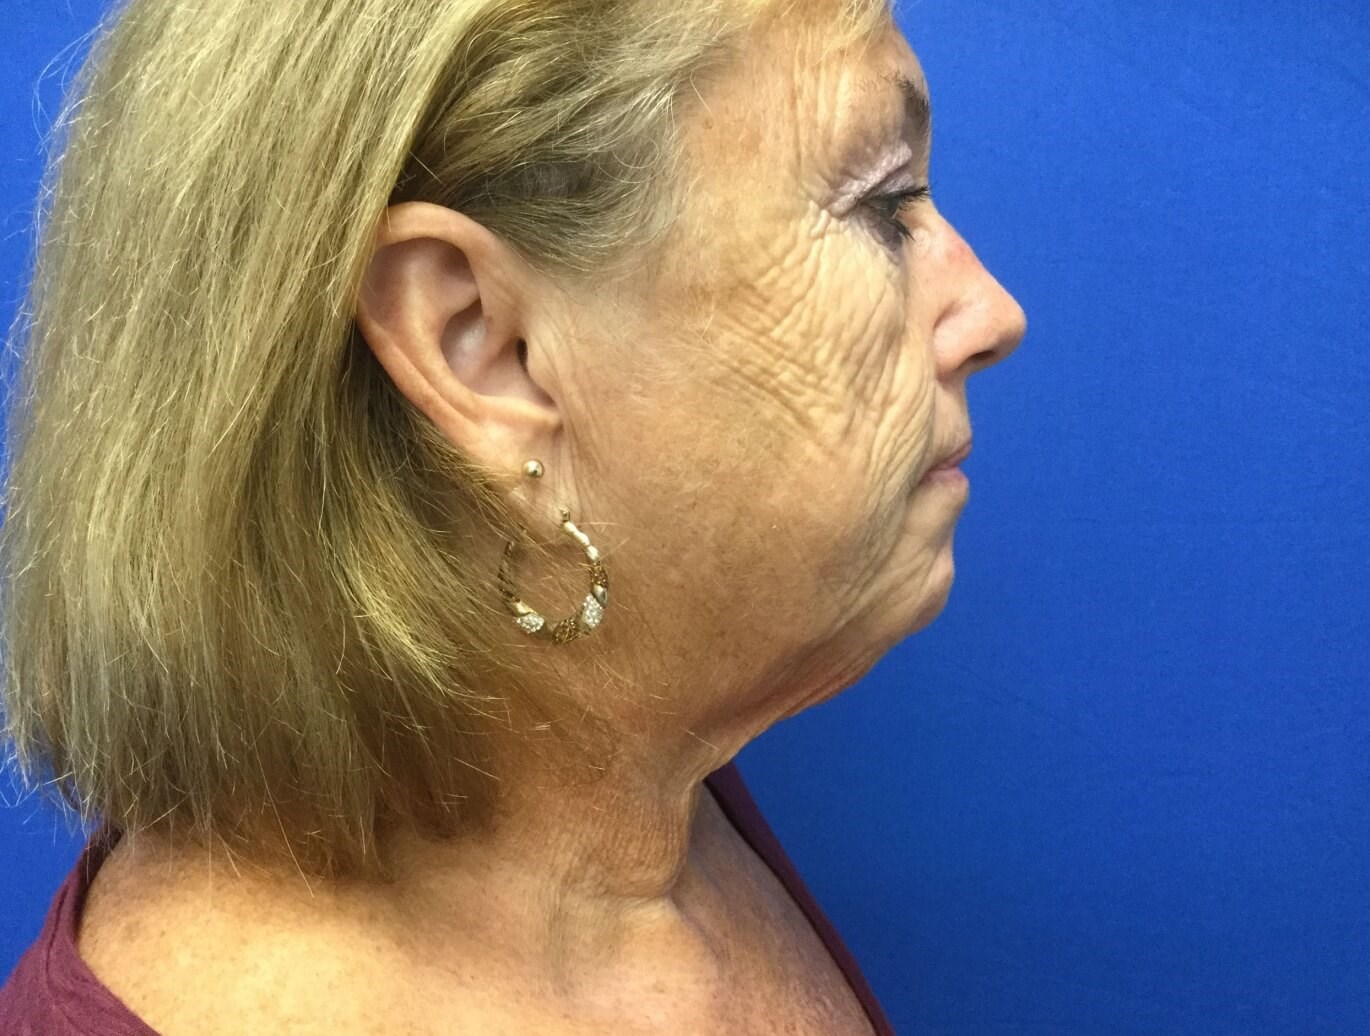 Facelift 1 week postop Before